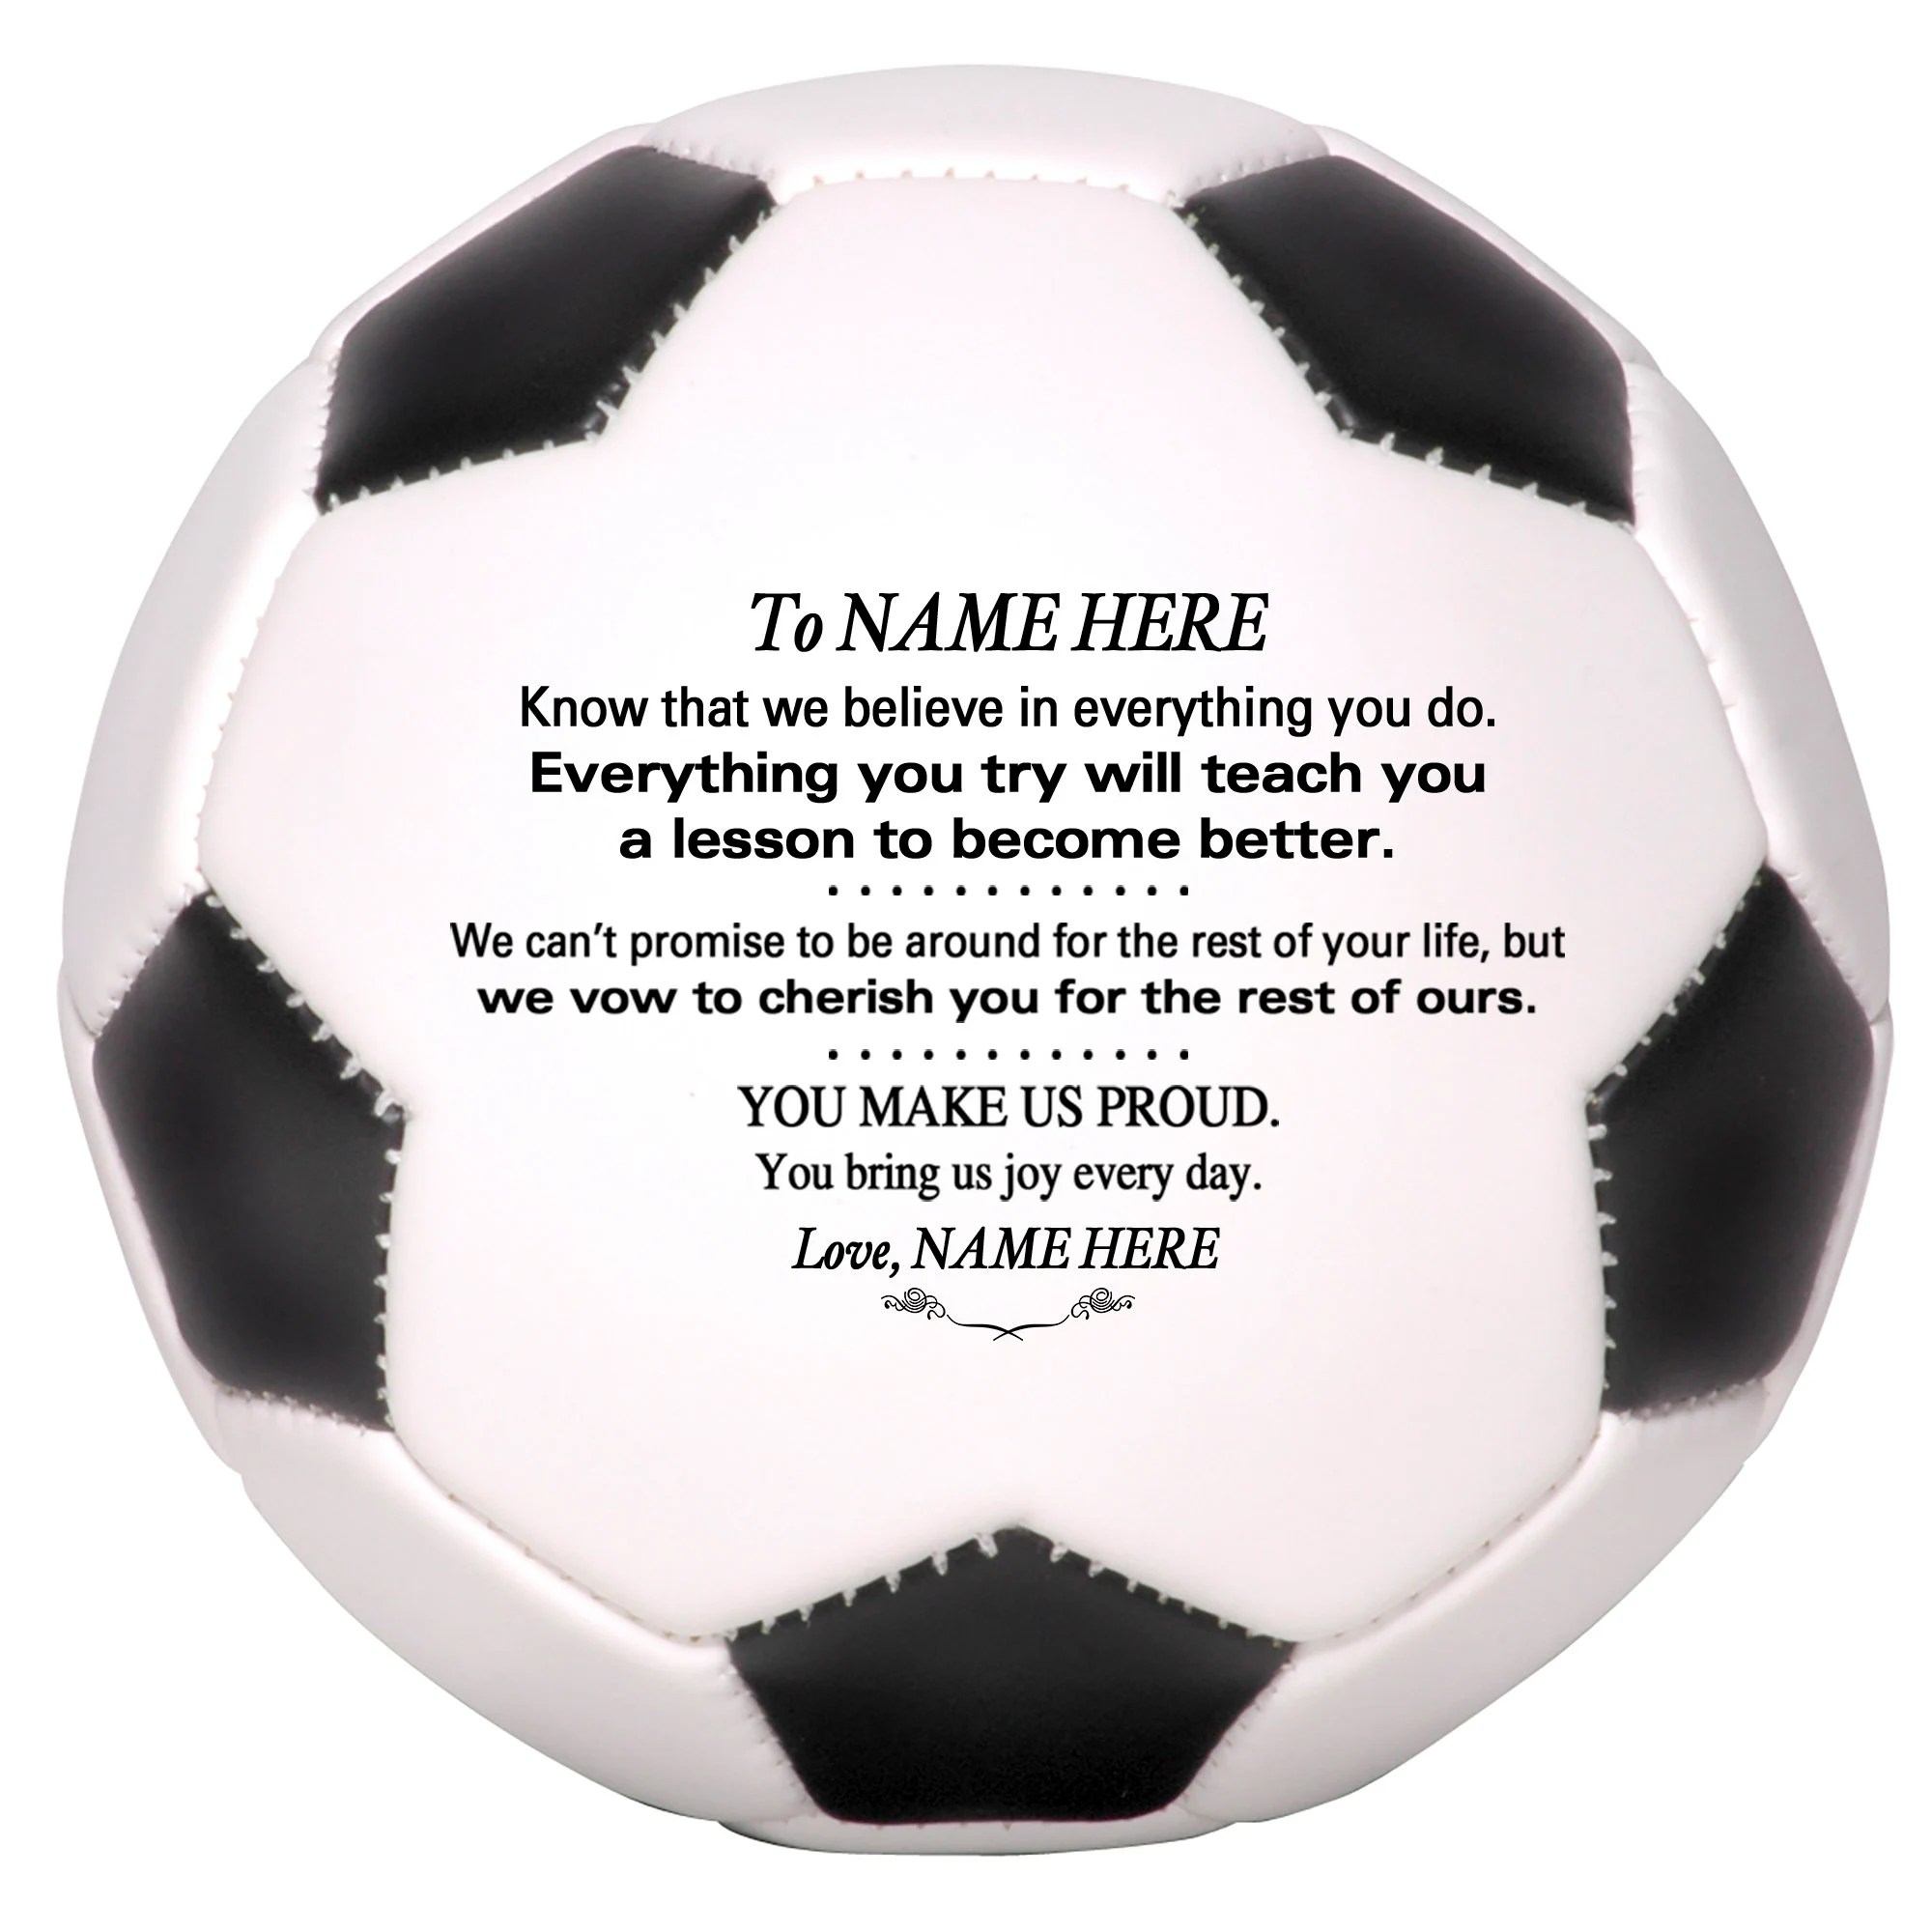 Personalized Custom Soccer Ball, To Our Son Grandson Daughter Granddaughter, from Grandpa Grandma Dad Mom, Wedding, Graduation Birthday                                                                905Depot         From shop 905Depot                               4 out of 5 stars                                                                                                                                                                                                                                                          (2)                 2 reviews                                                      CA$49.39                                                                   FREE delivery